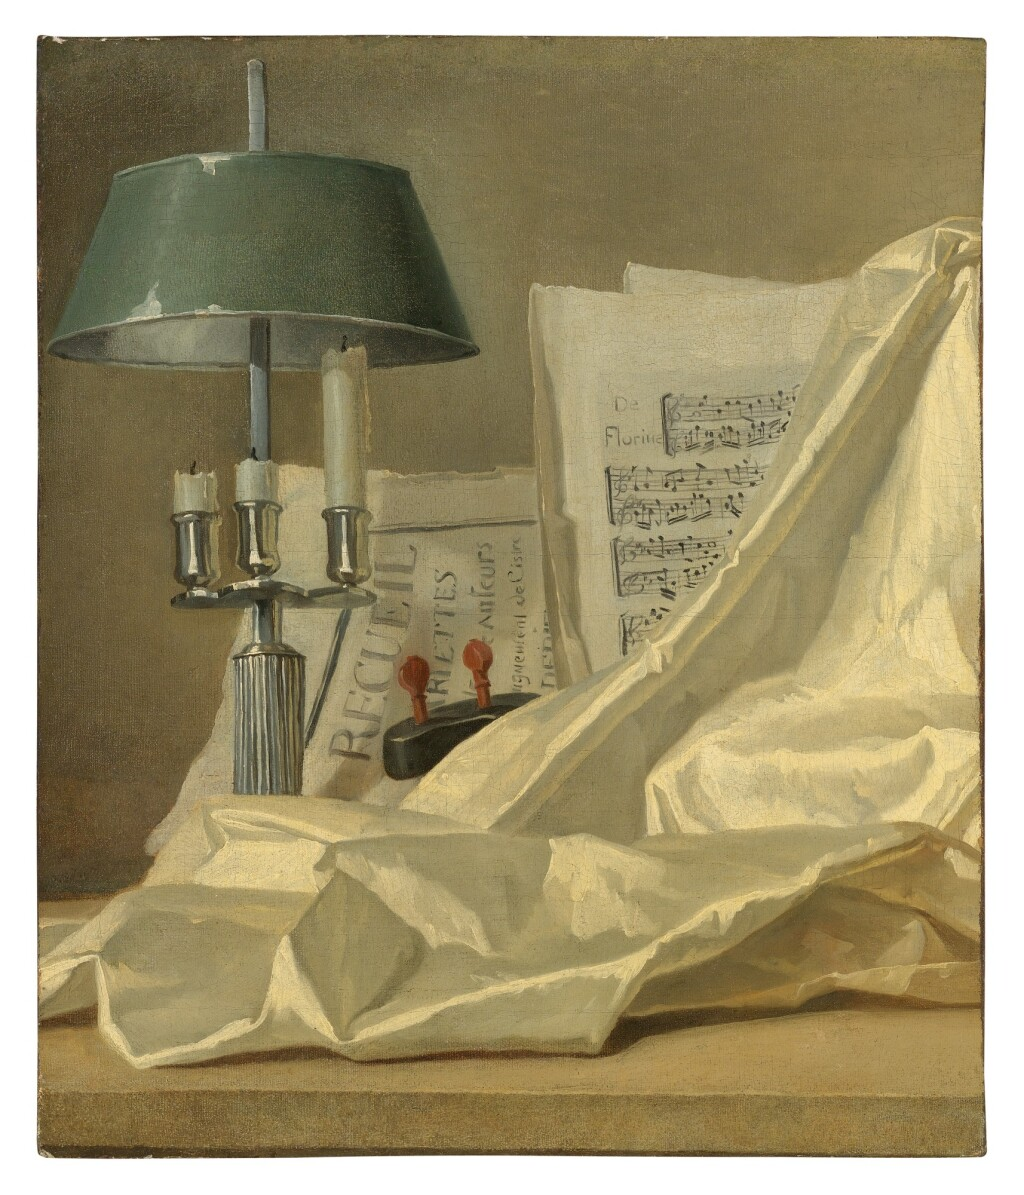 ATTRIBUTED TO HENRI-HORACE ROLAND DE LA PORTE     A STILL LIFE WITH A BOUILLETTE LAMP, A SHEET OF MUSIC, A VIOLIN OR A CITTERN, AND A WHITE SATIN CLOTH ON A STONE LEDGE